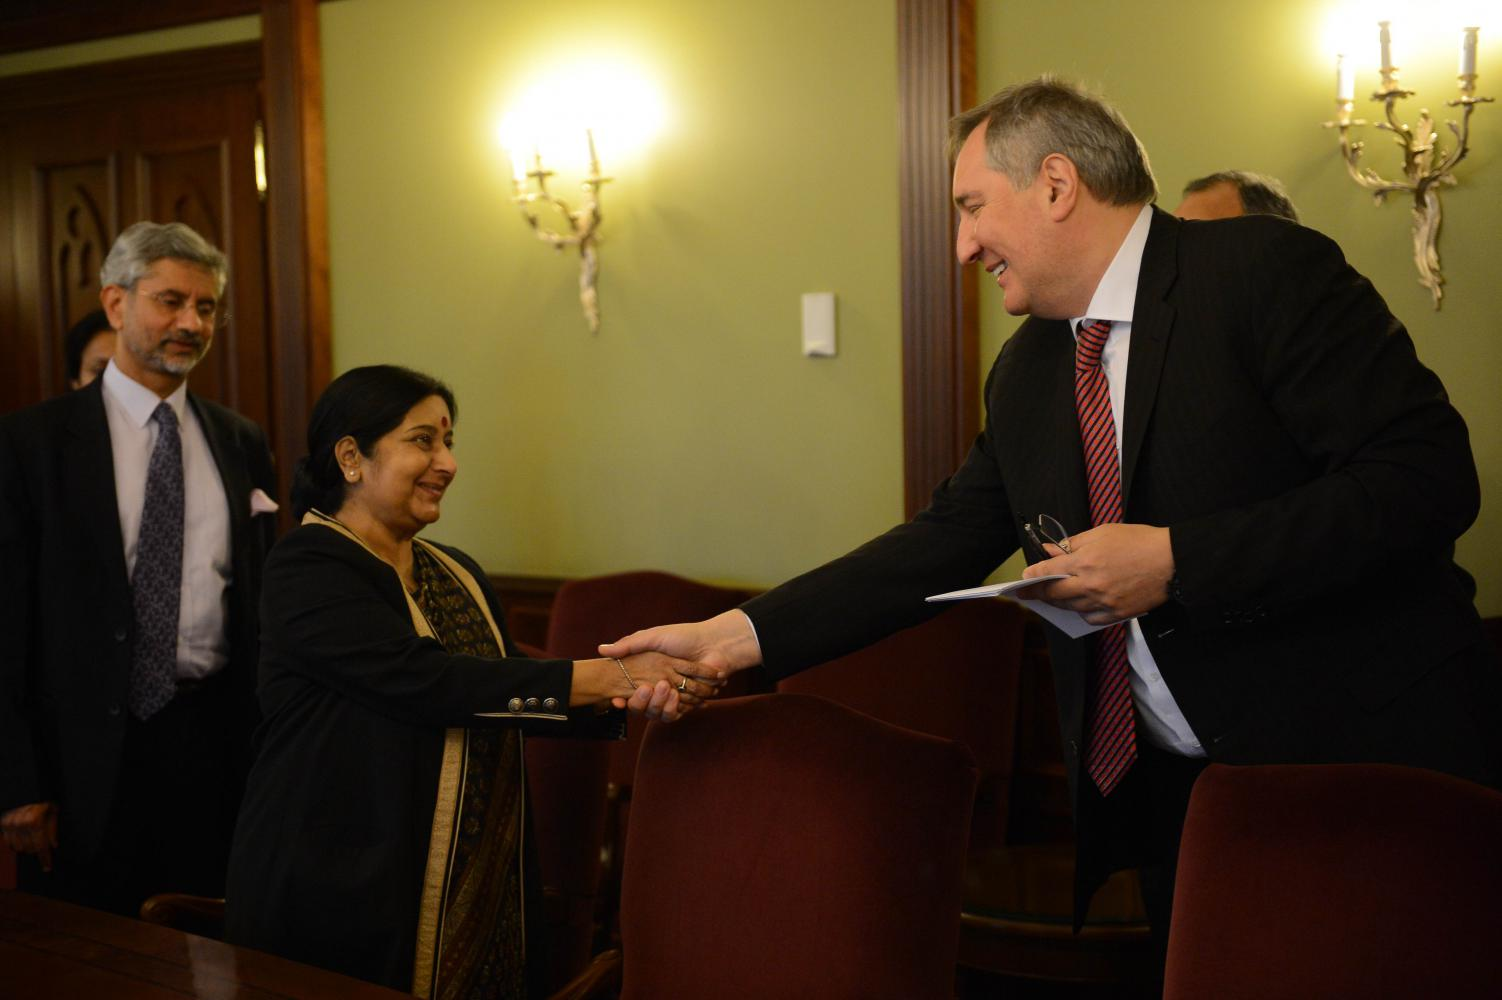 Swaraj and Rogozin reviewed progress in Russia's participation in India's defence sector under the Make In India program.